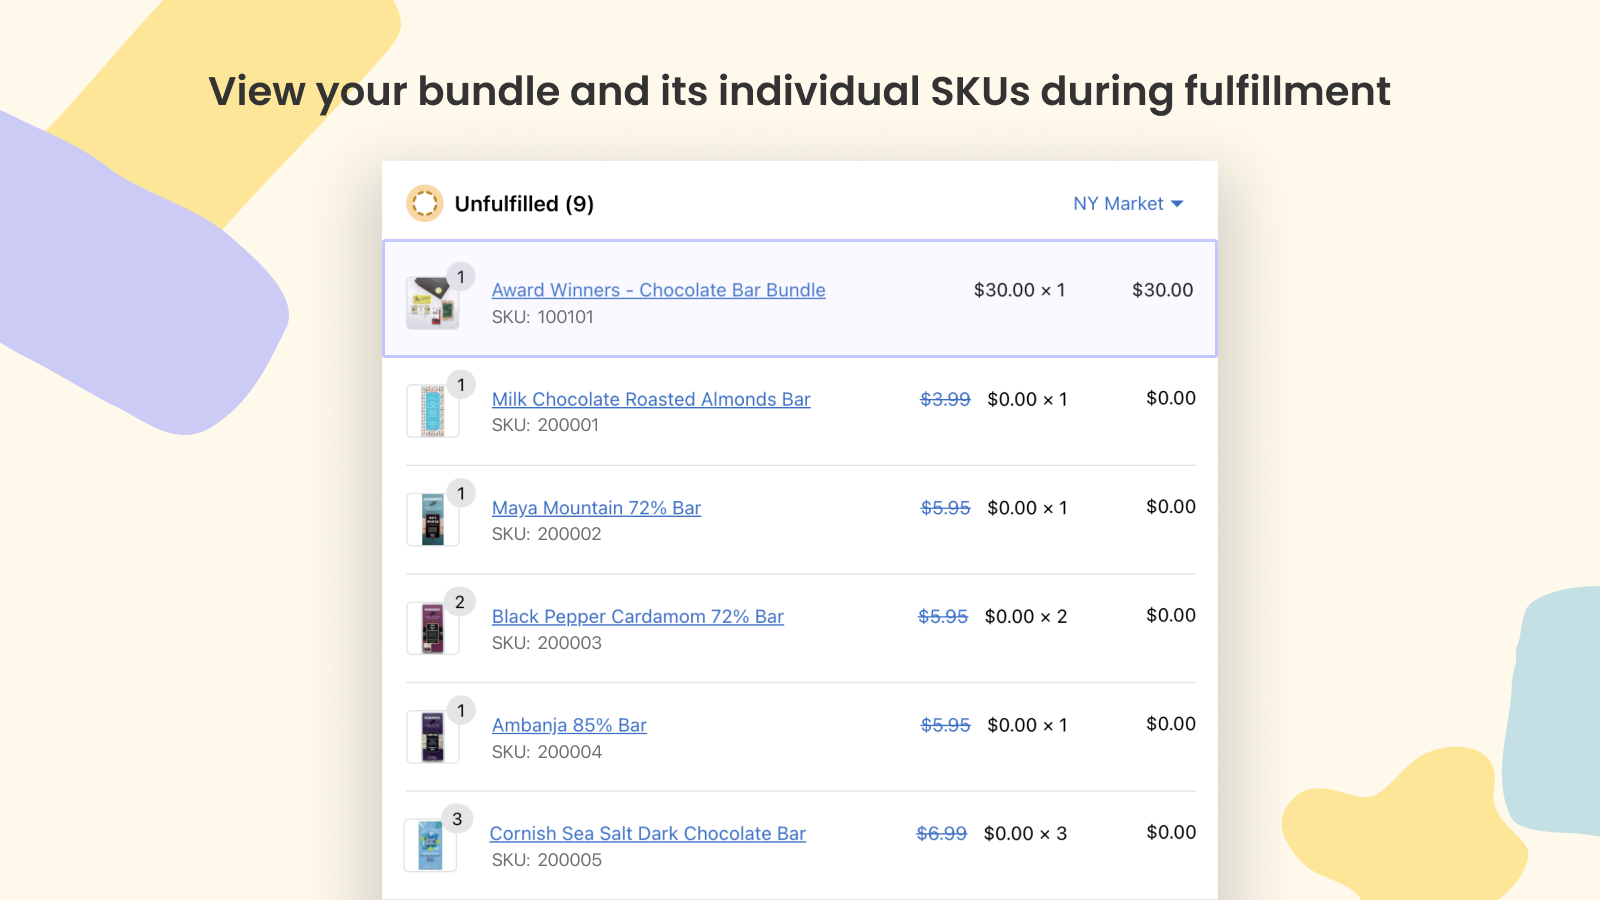 View your bundle and its individual SKUs during fulfillment